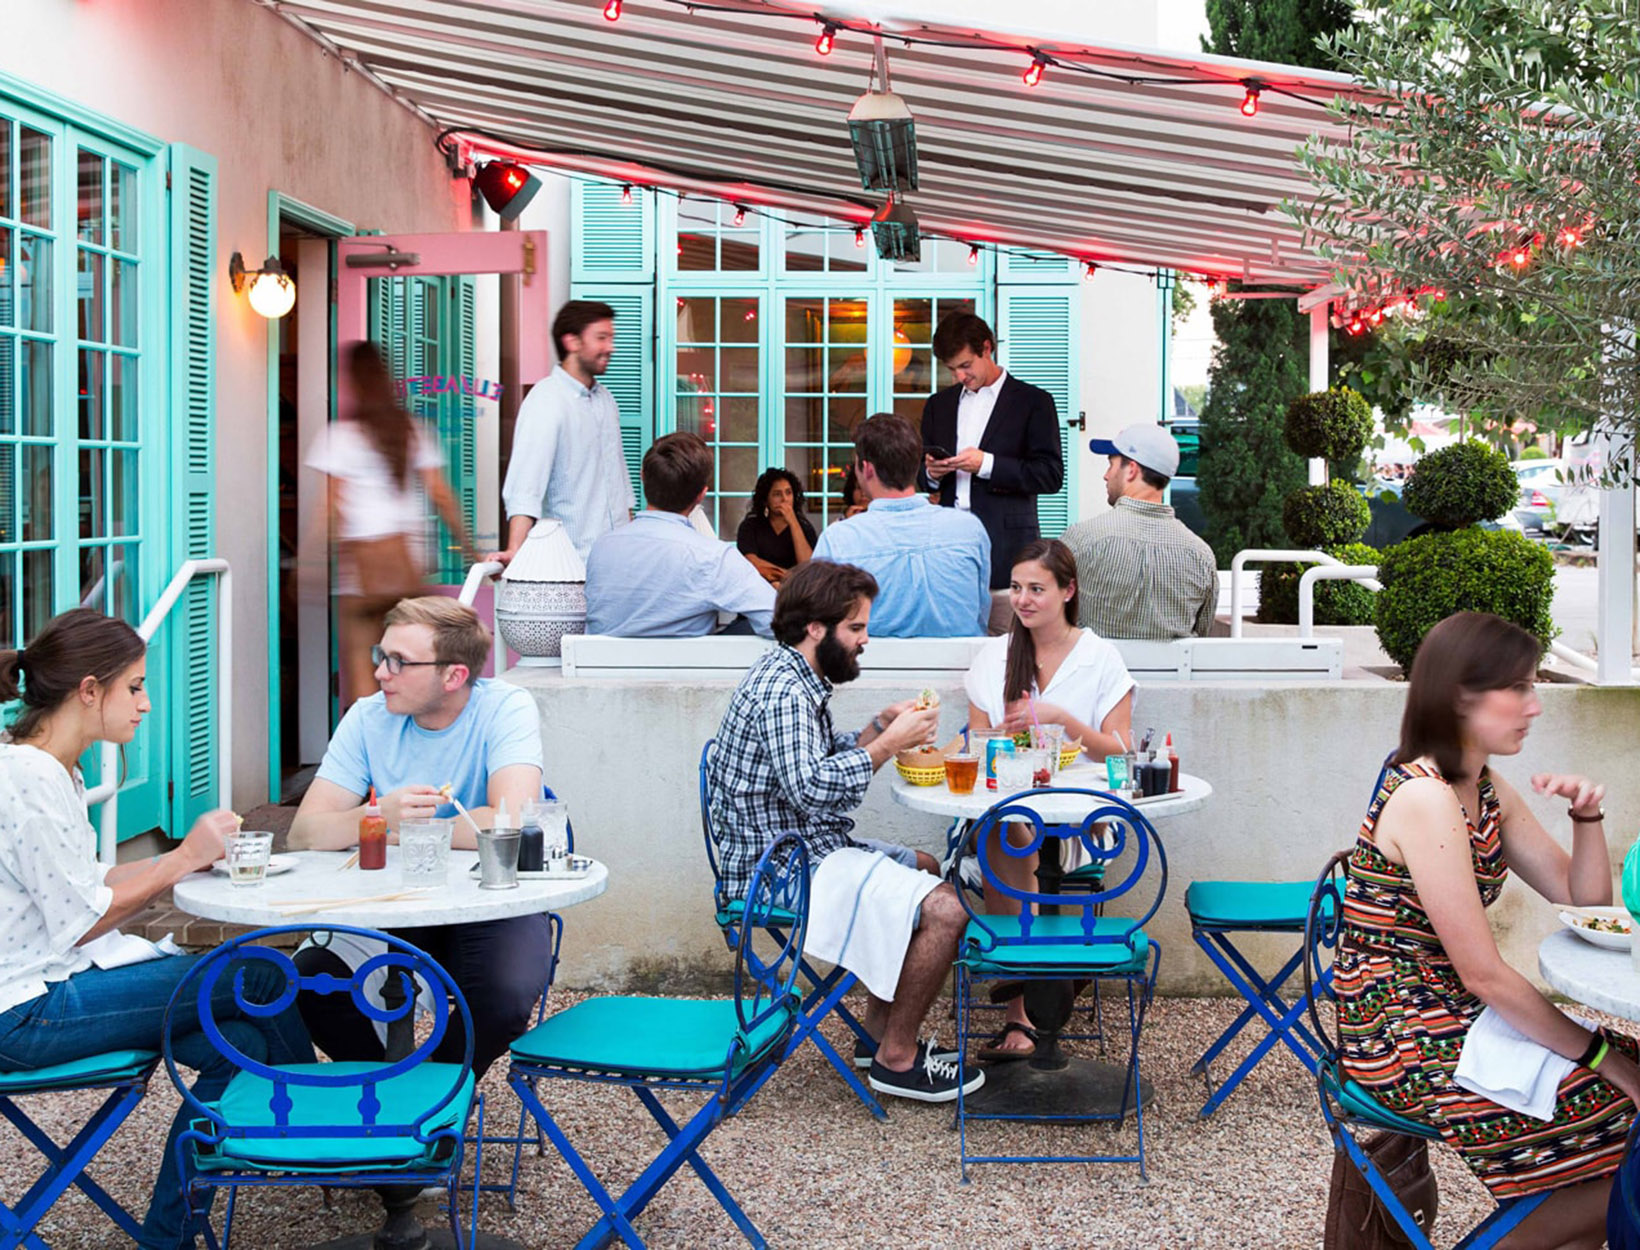 48 Hours in Austin: Where to Stay, What to Do, and What to Pack